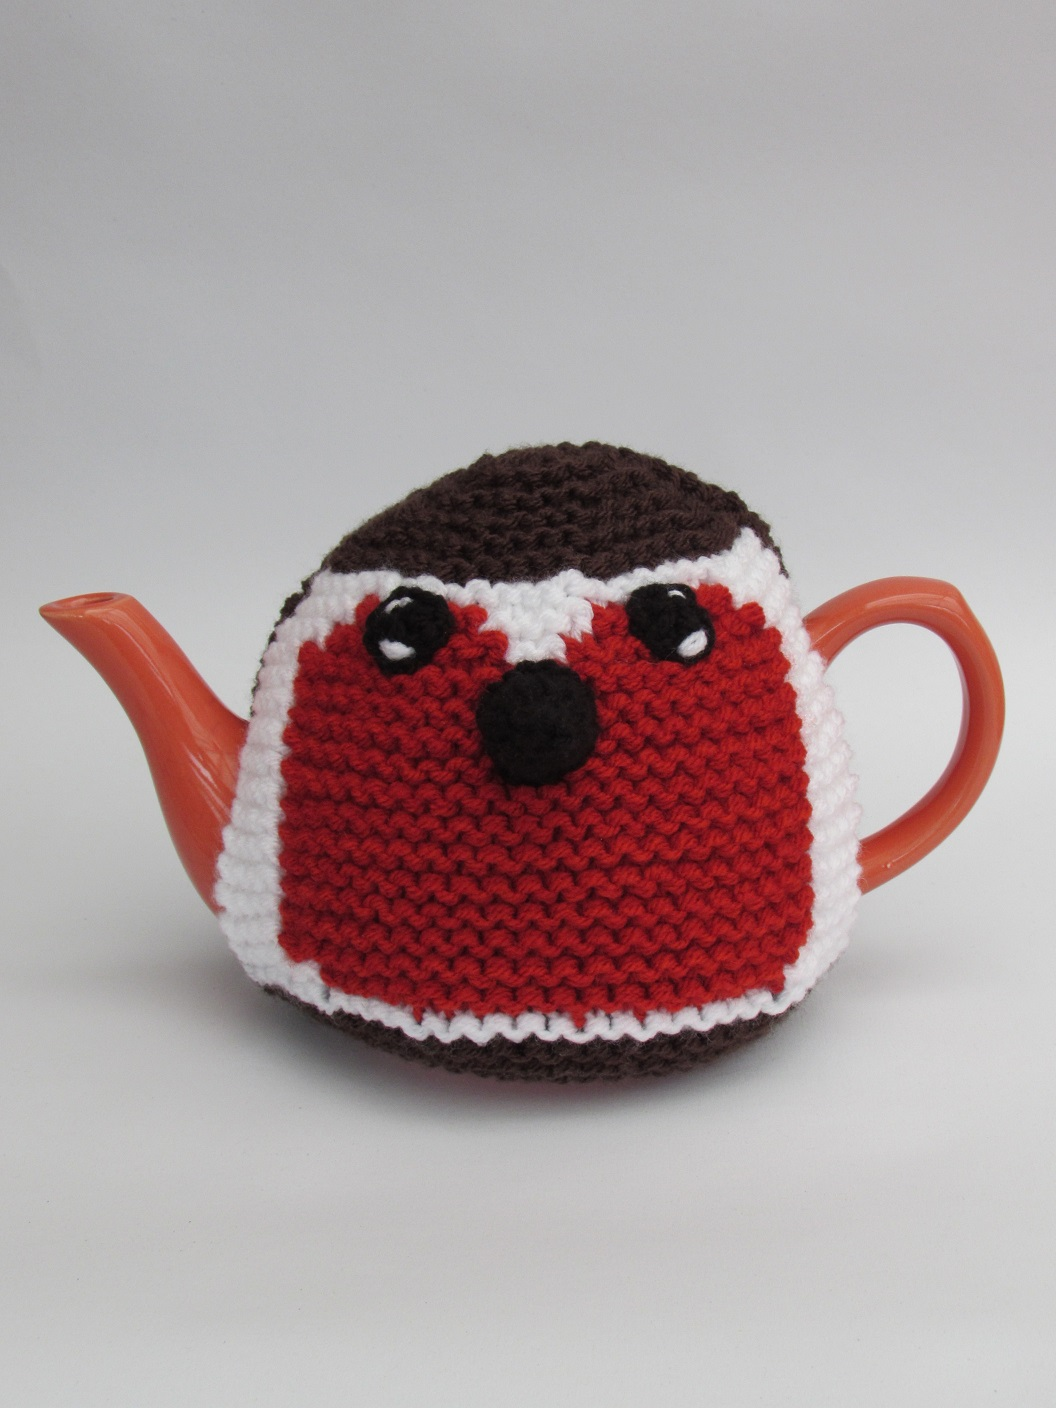 Robin Red Brest tea cosy